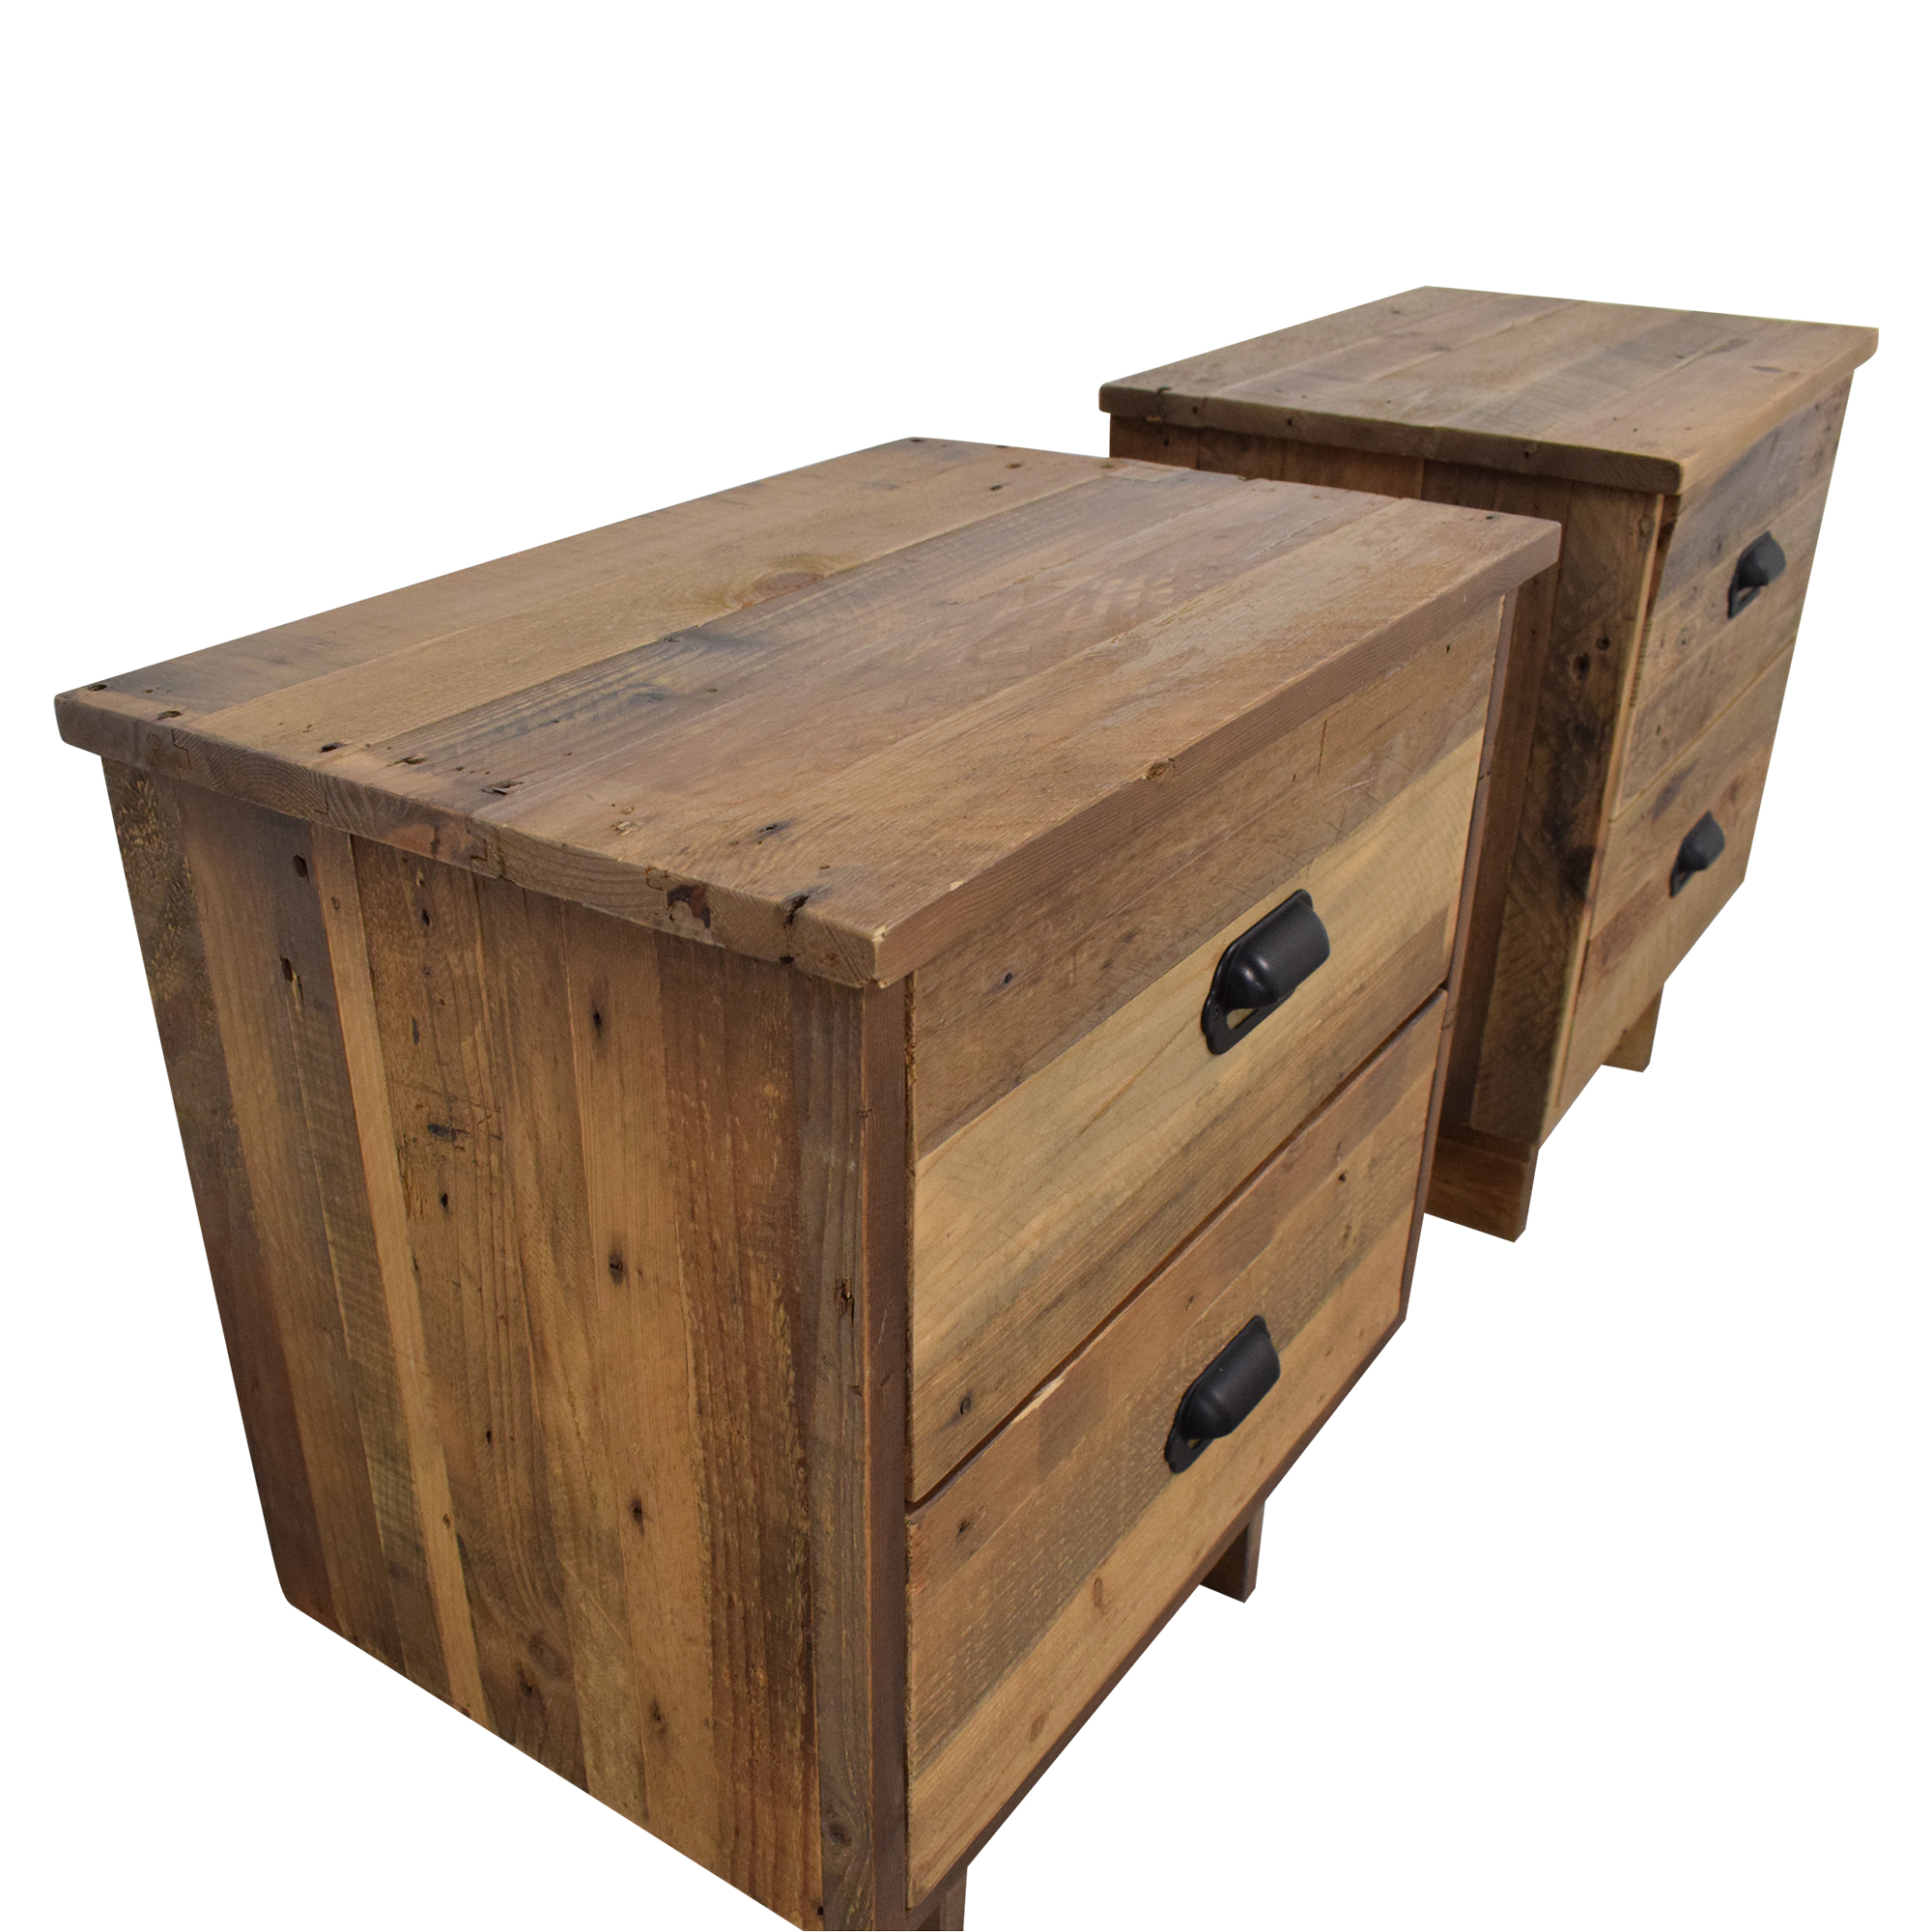 PGT Reclaimed PGT Reclaimed Wood Nighstands Tables